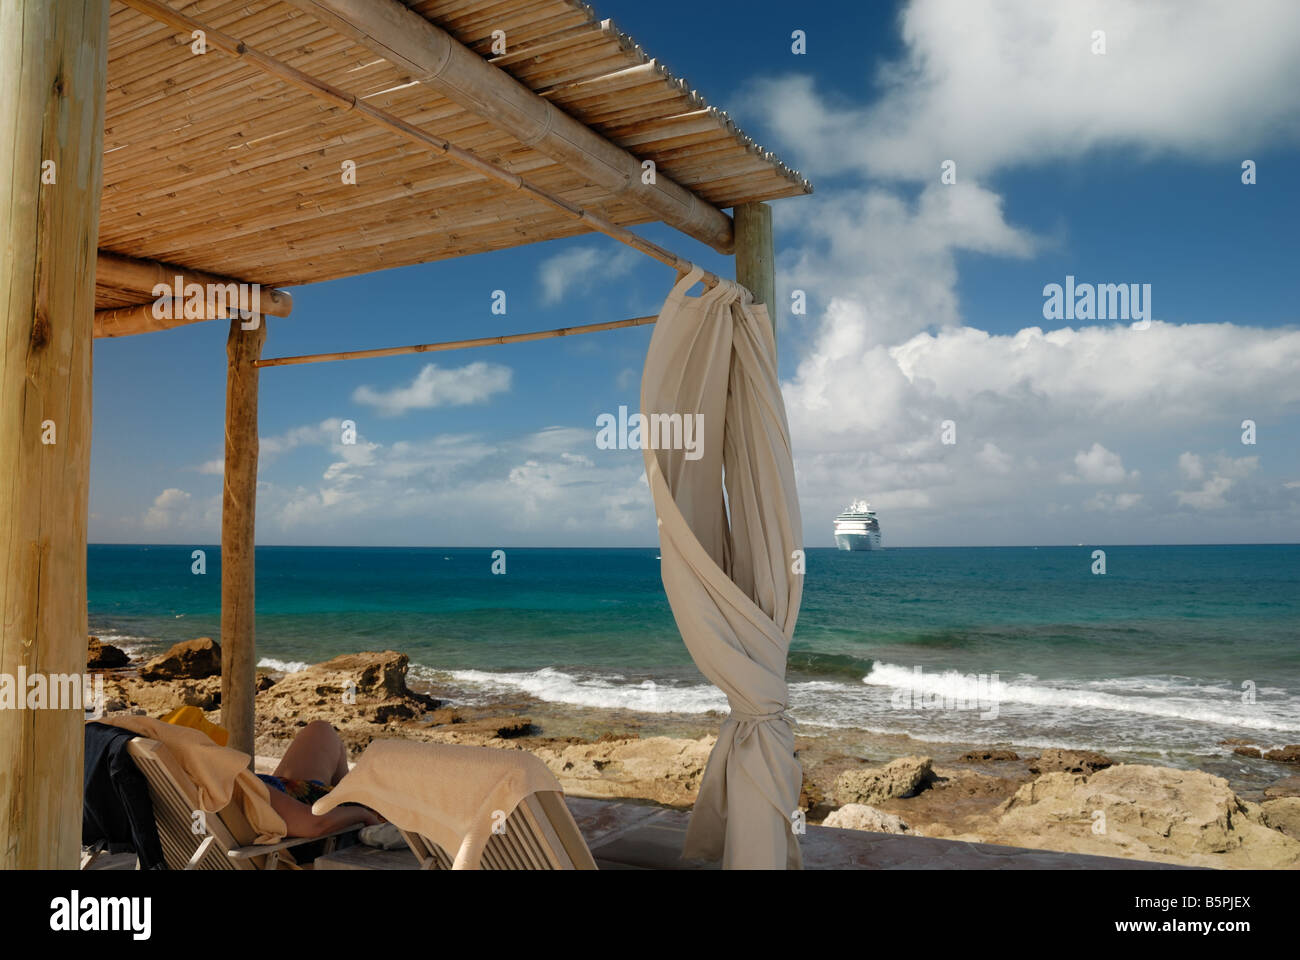 A traveler lounges in a hut on the beach at Little Stirrup Cay.  Cruise ship Majesty of the Seas can be seen in - Stock Image